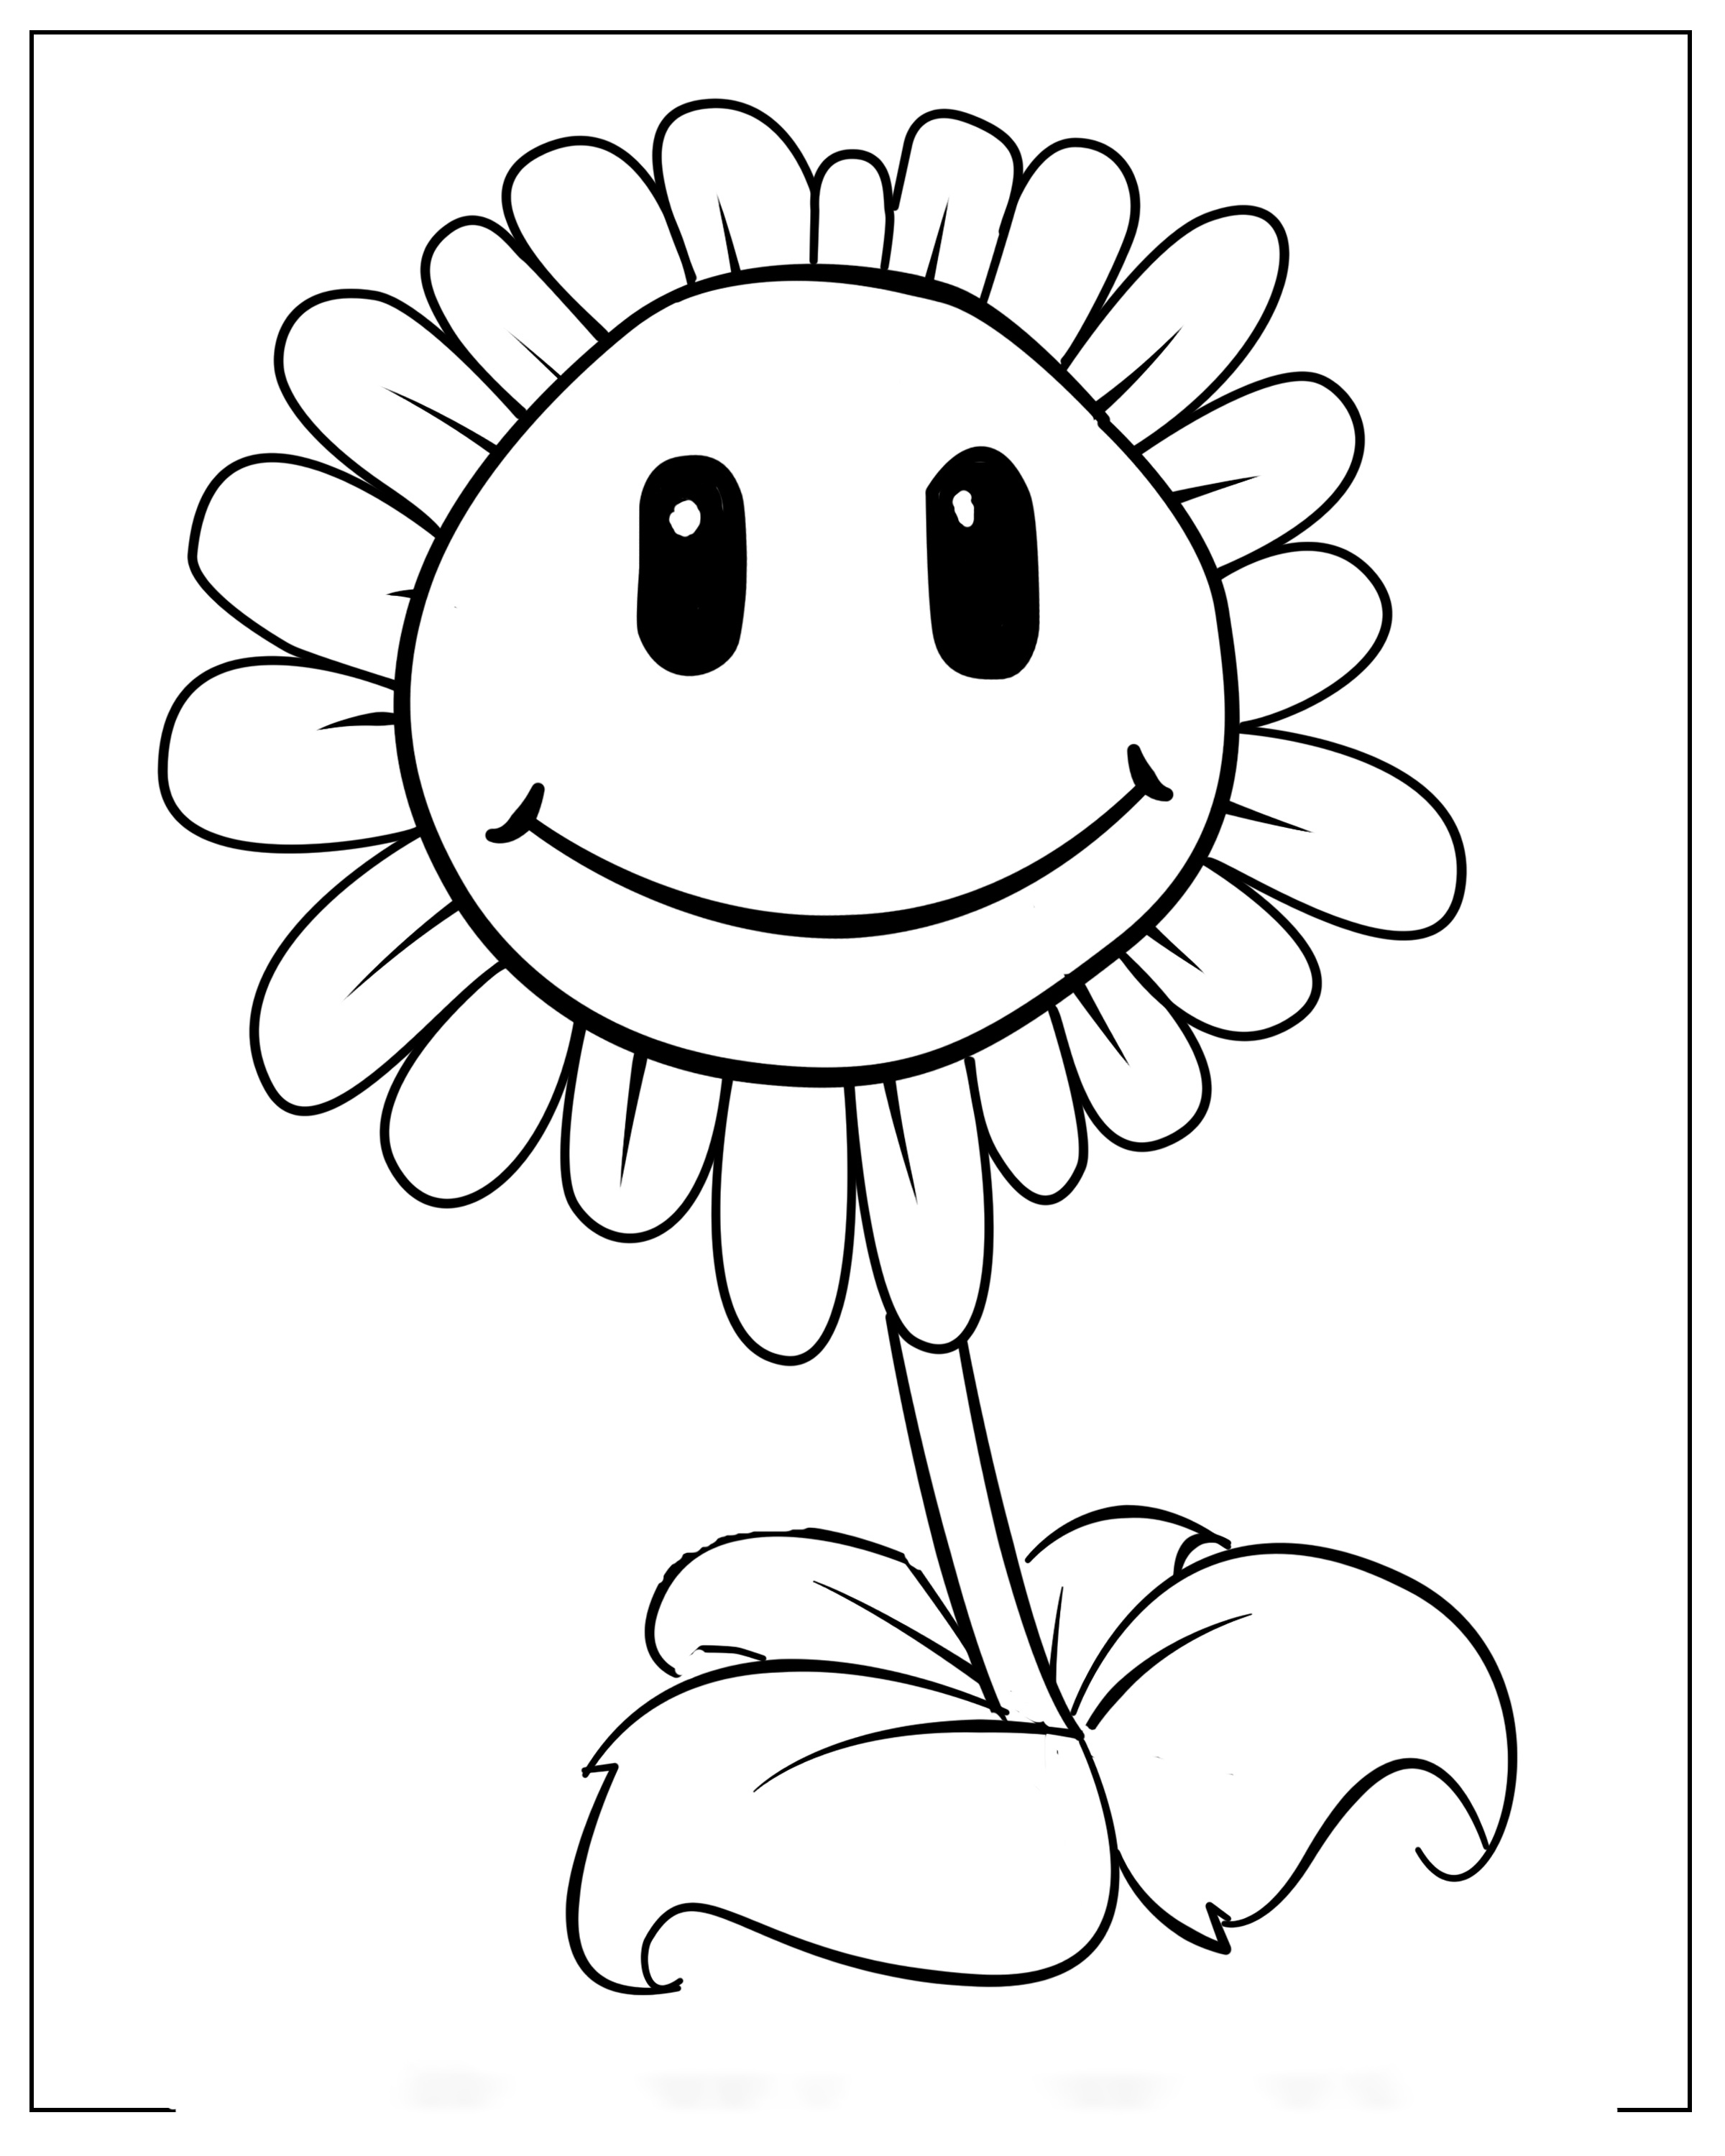 Smiling Sunflower Coloring Page